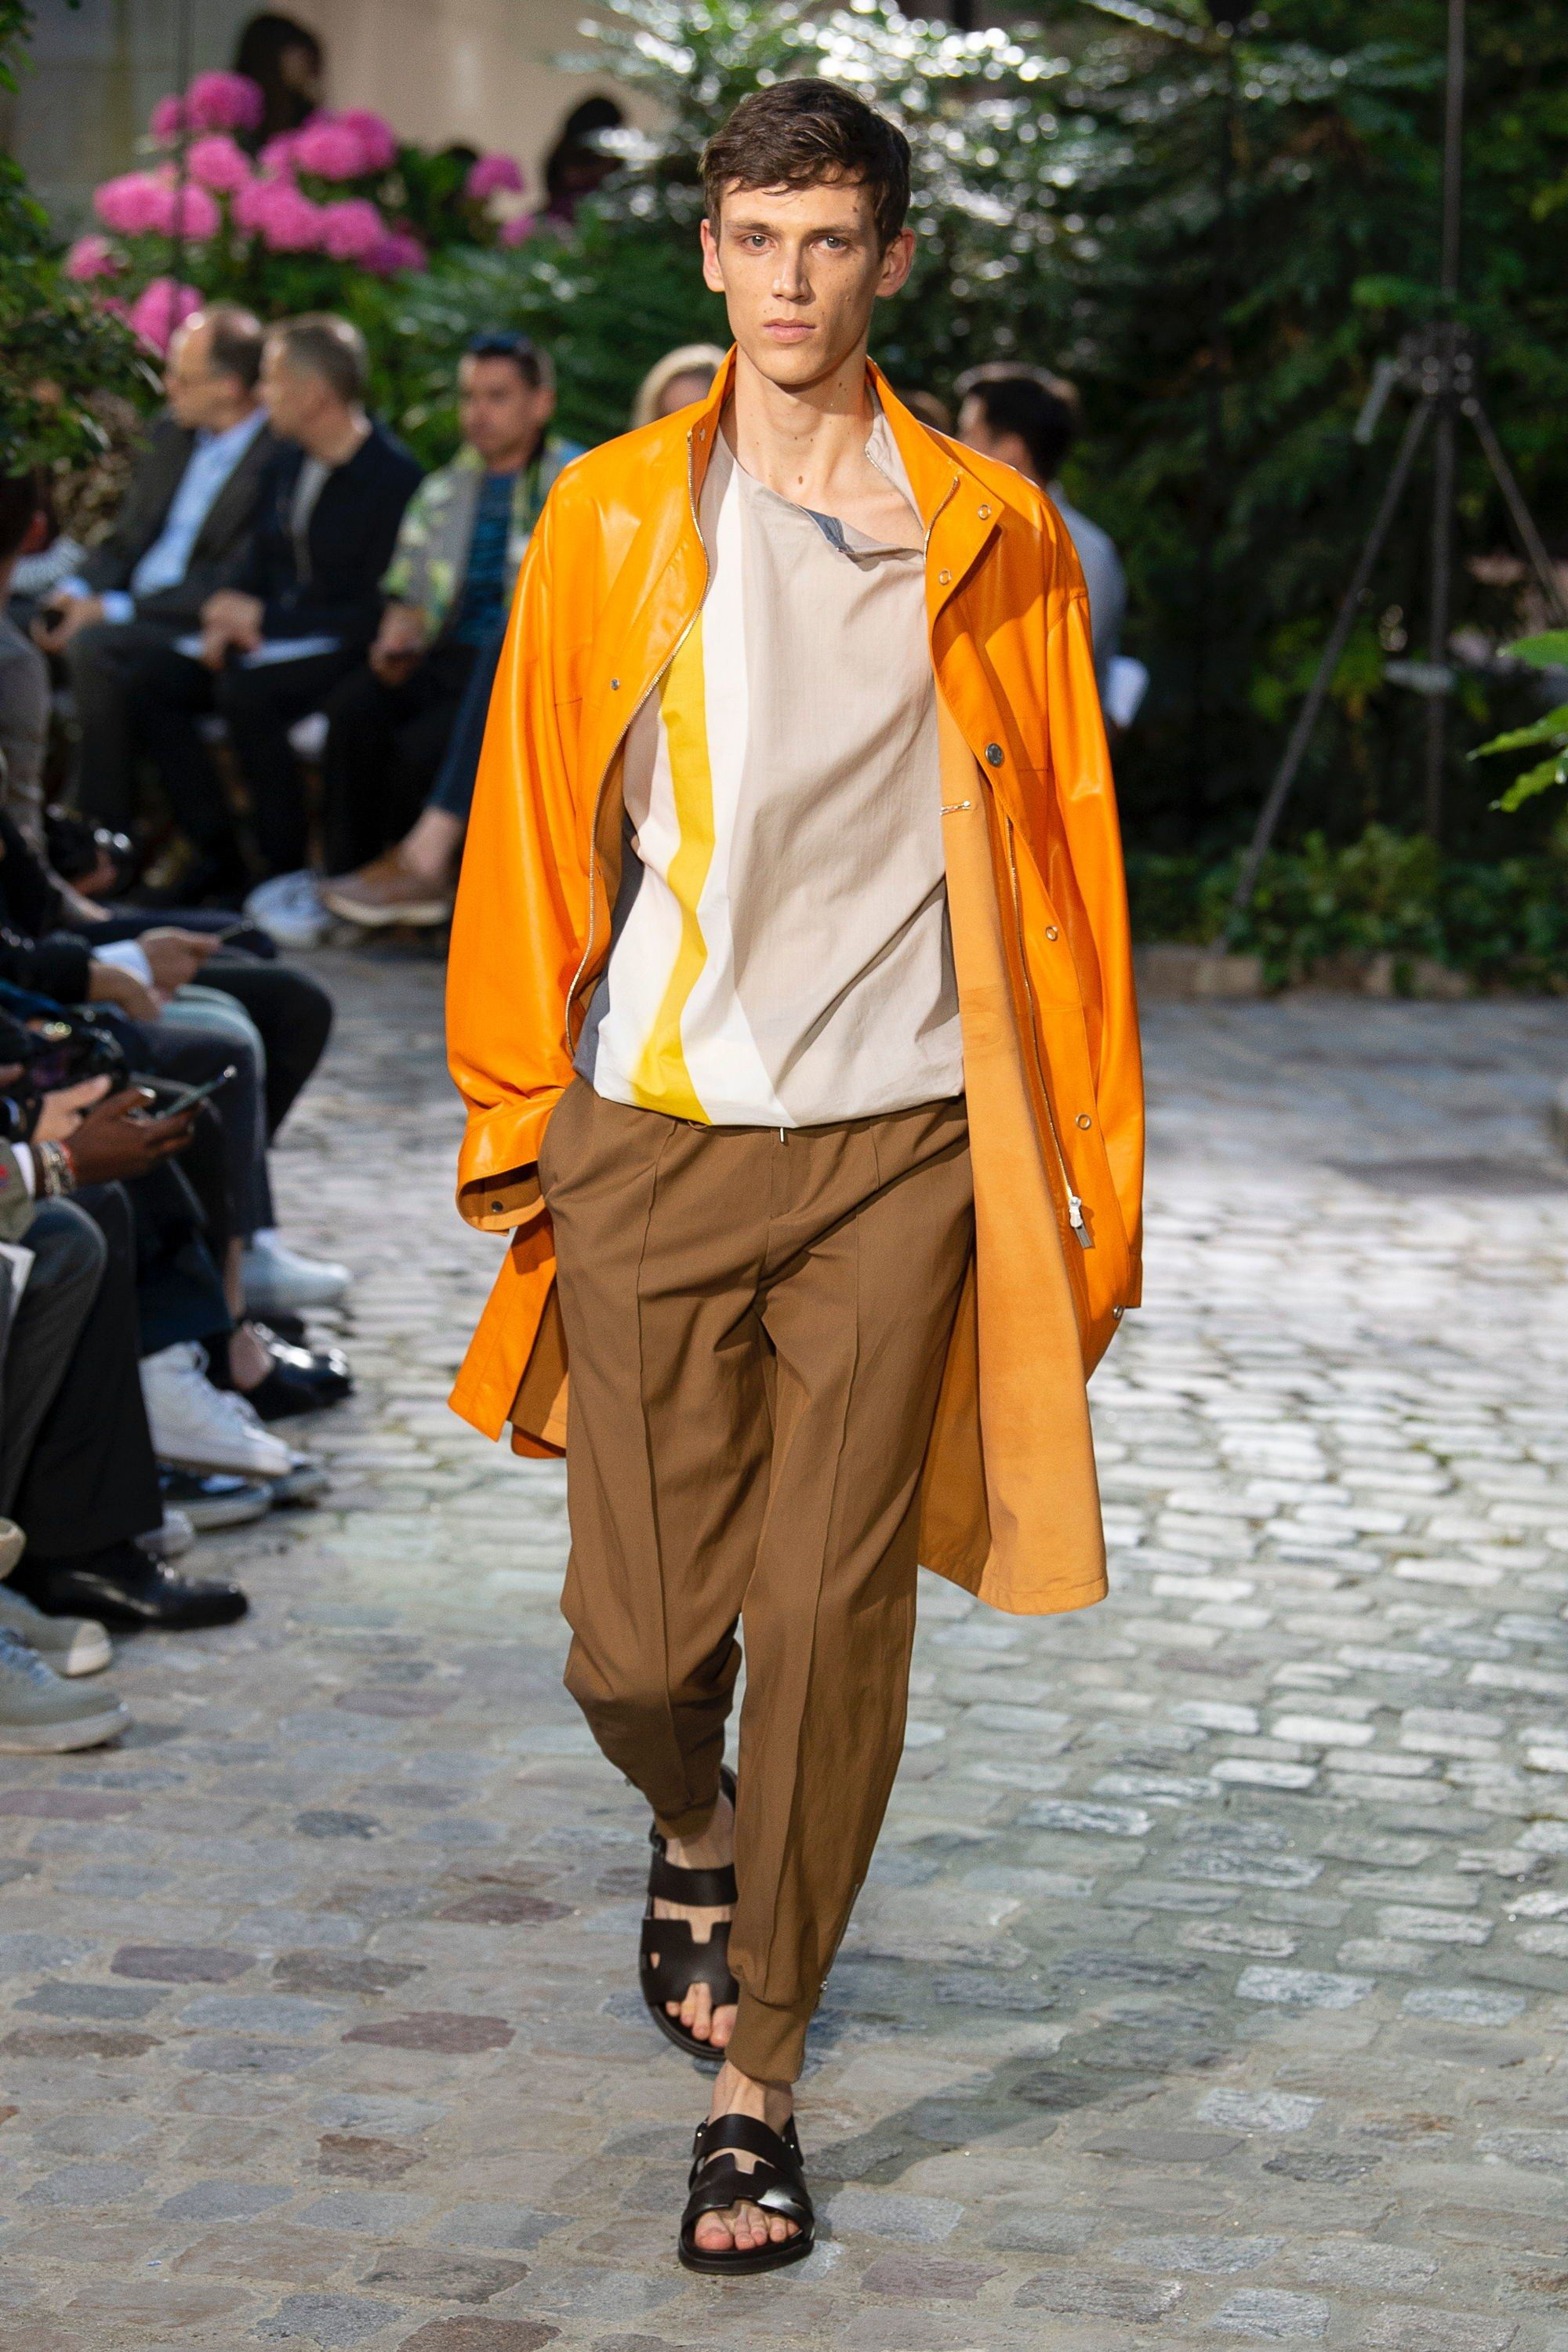 eb56fd02ec00 Hermès Spring 2019 Menswear Fashion Show in 2018 ...